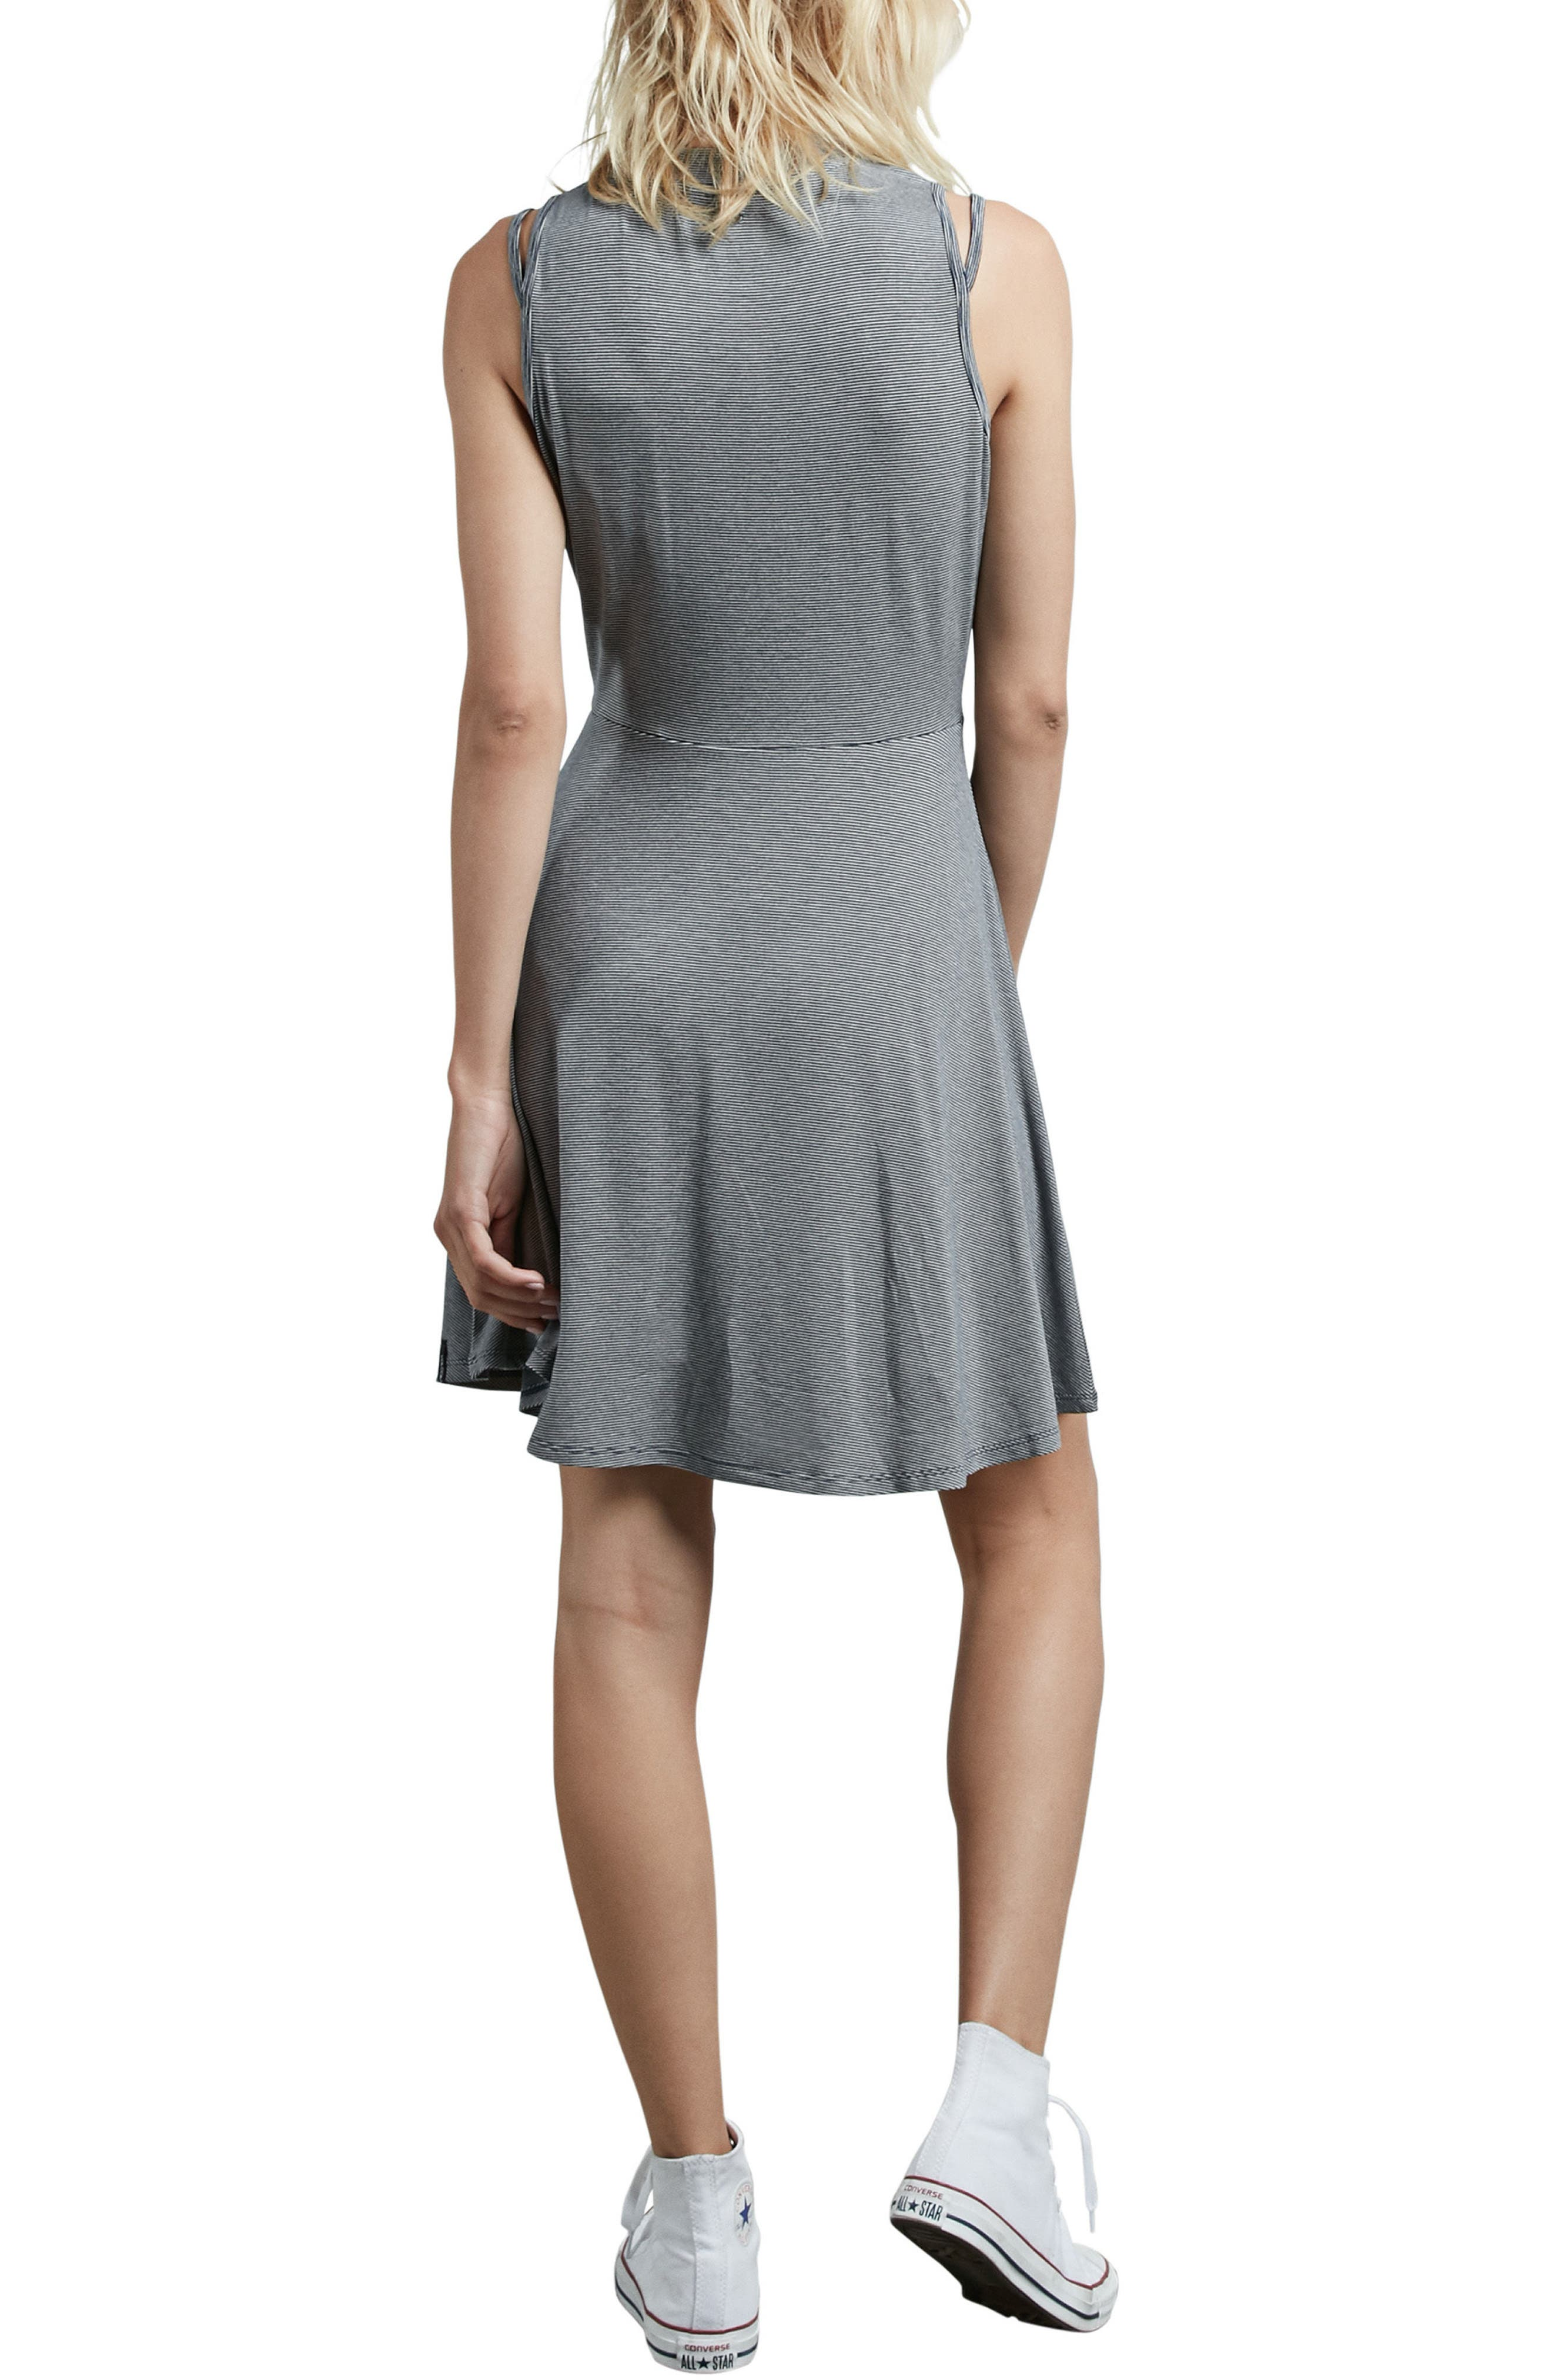 Open Arms Strappy Skater Dress,                             Alternate thumbnail 2, color,                             100